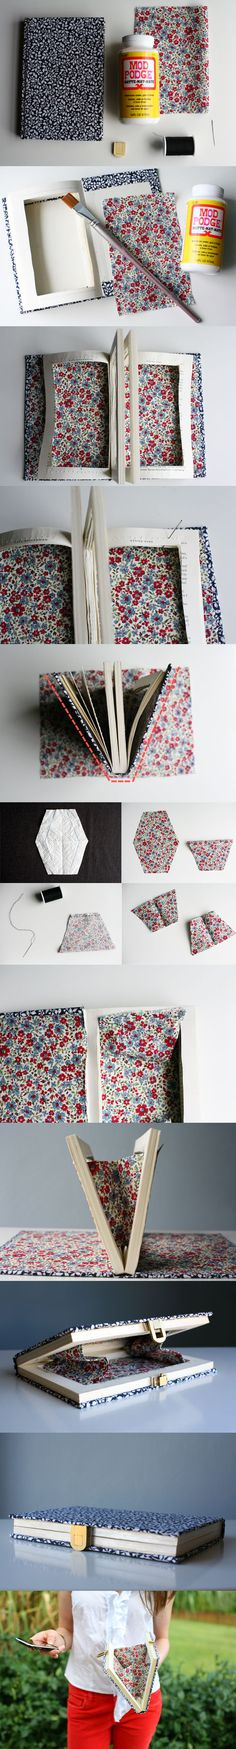 Diy book clutch so creative Cute Crafts, Diy And Crafts, Arts And Crafts, Book Clutch, Book Purse, Clutch Purse, Diy Clutch, Ideias Diy, Diy Accessories